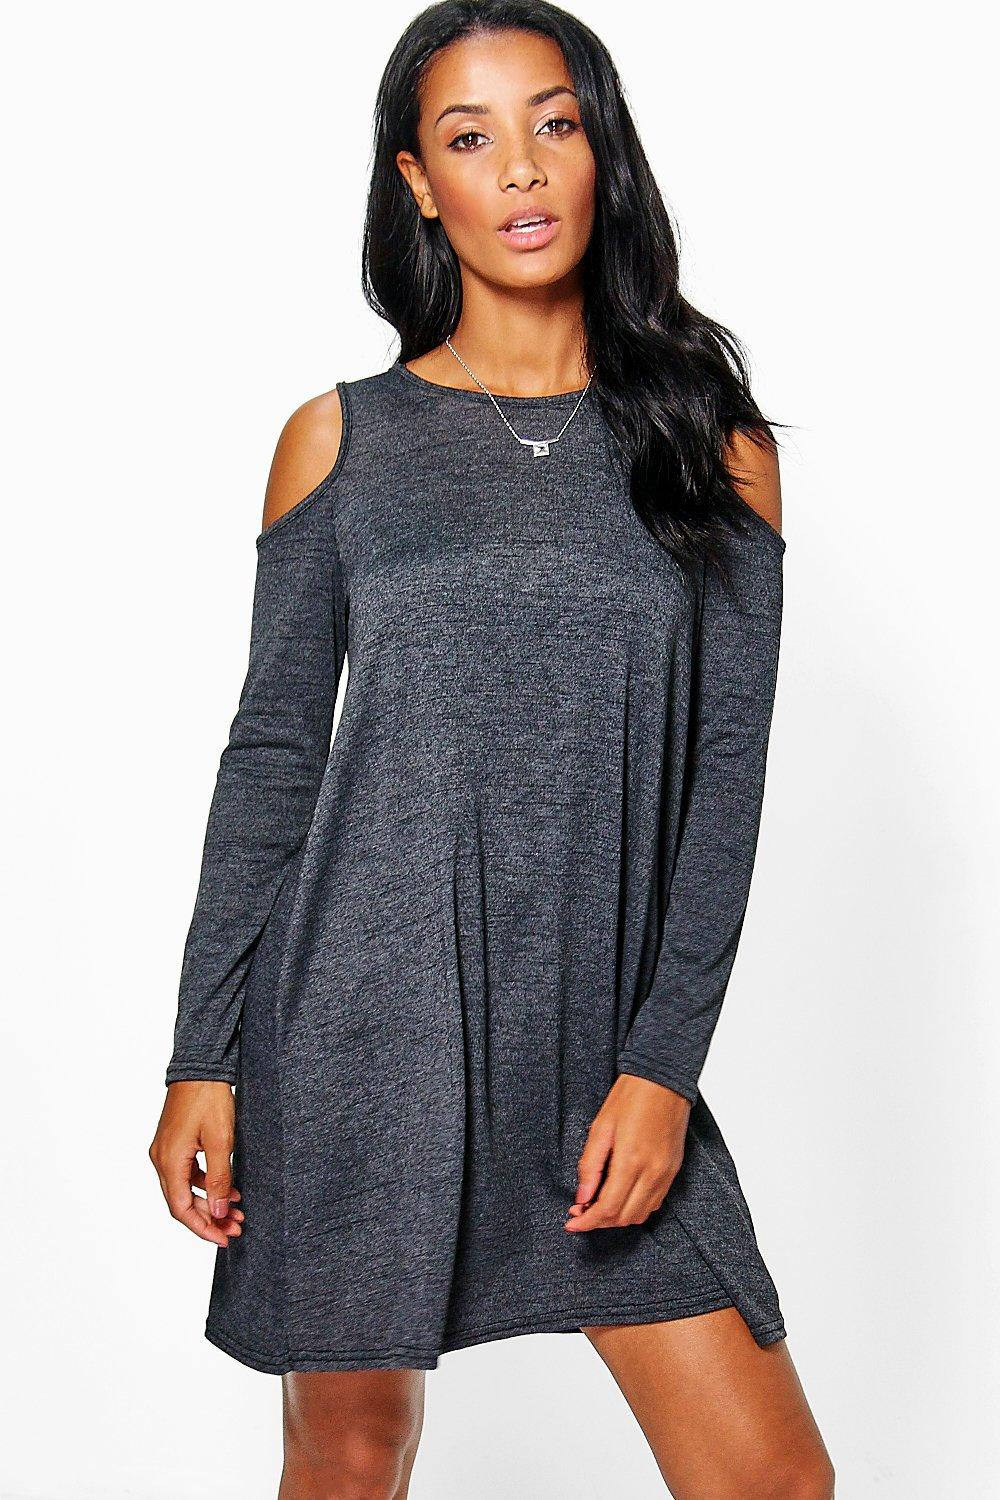 Eva Open Shoulder Knitted Swing Dress